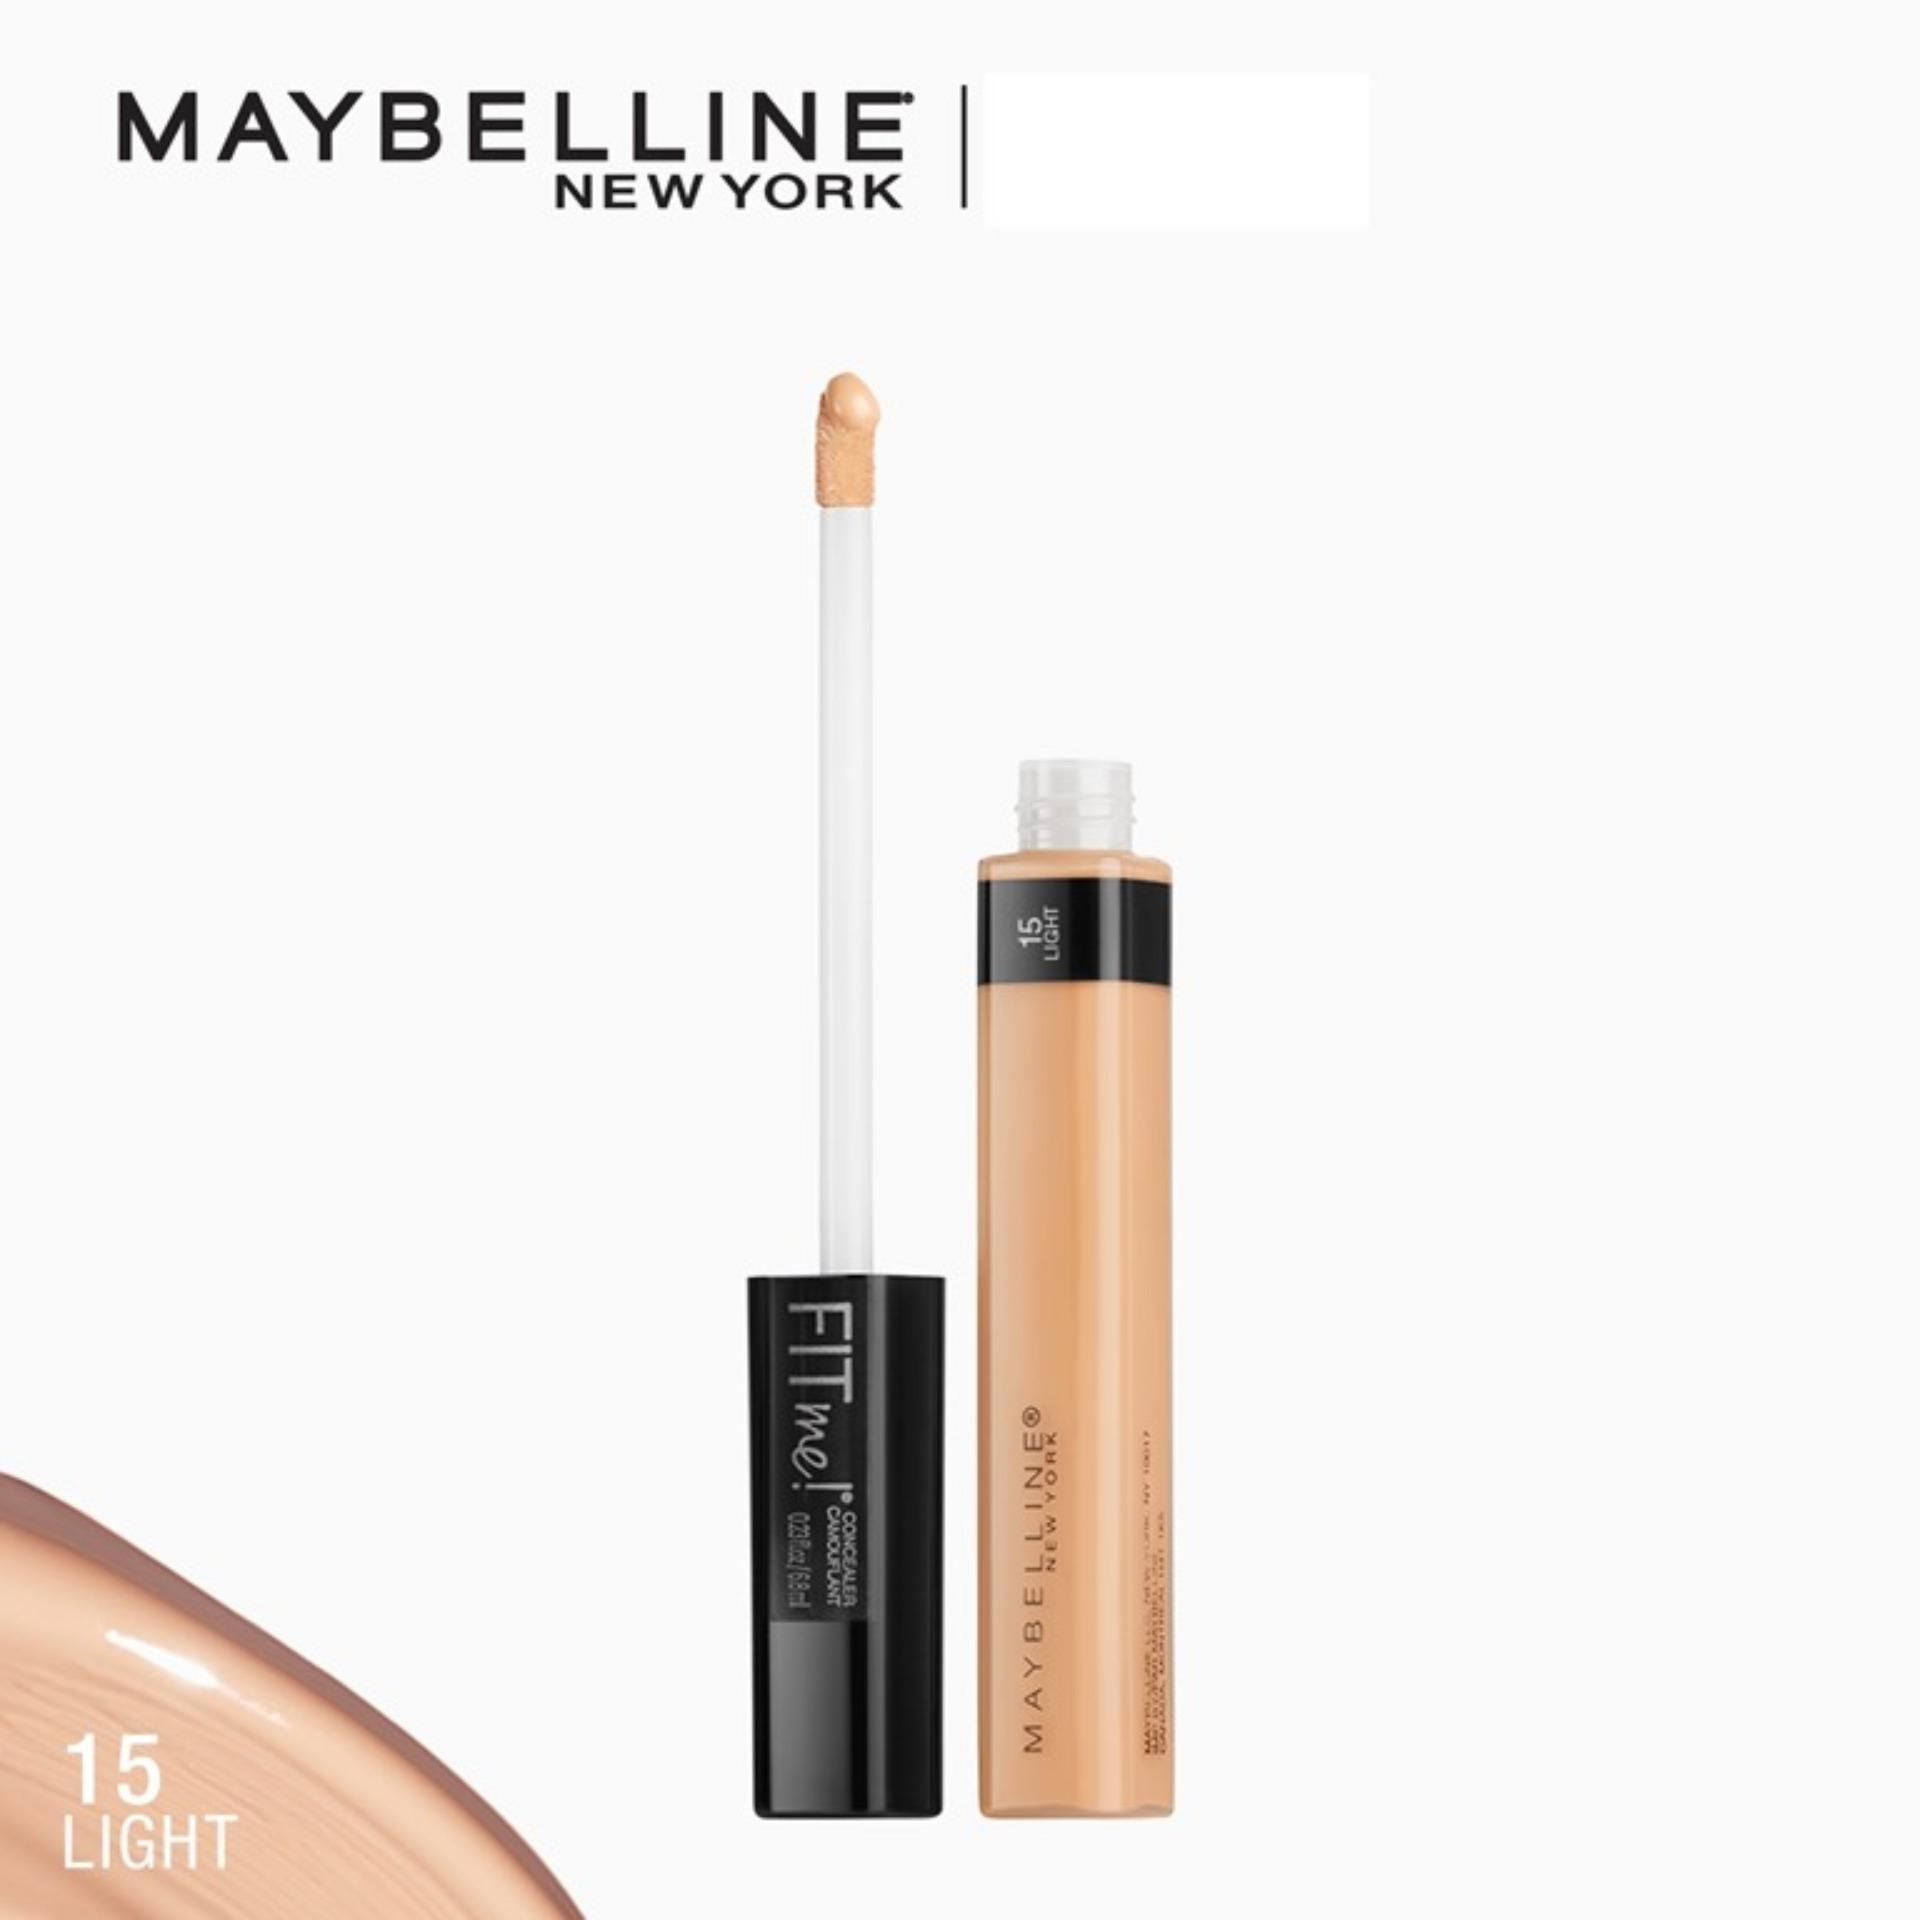 MAYBELLINE Fit Me Flawless Natural Concealer - 10 Light Philippines